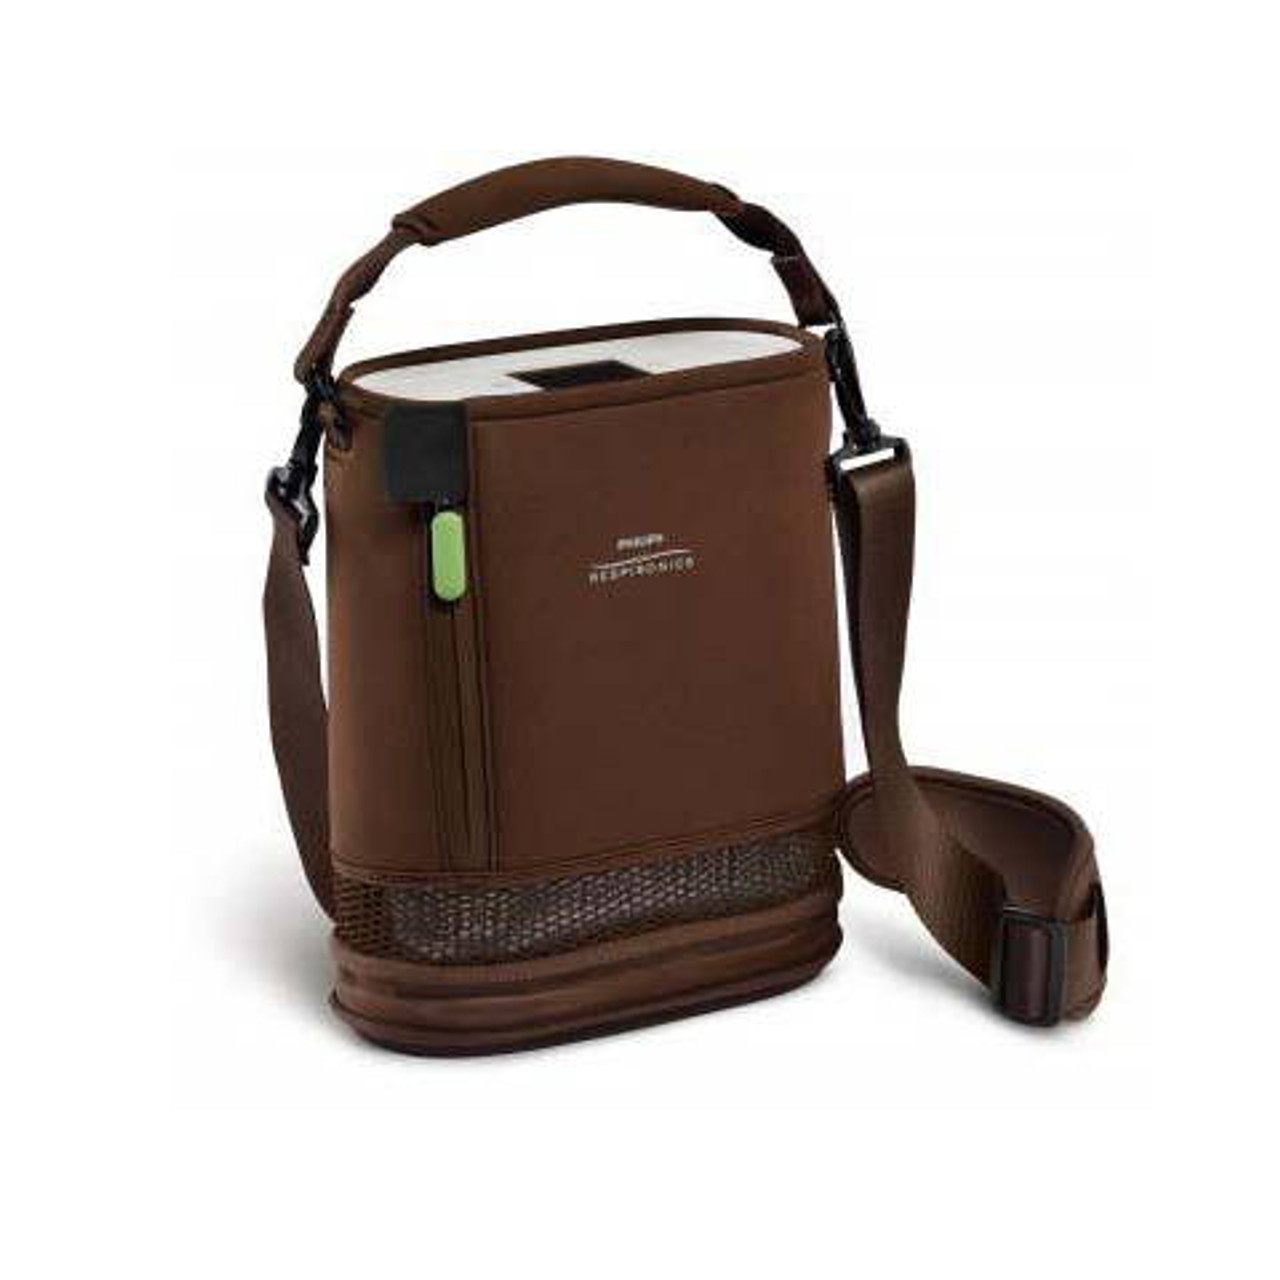 SimplyGo MINI Shown with Carry Case and Shoulder Strap